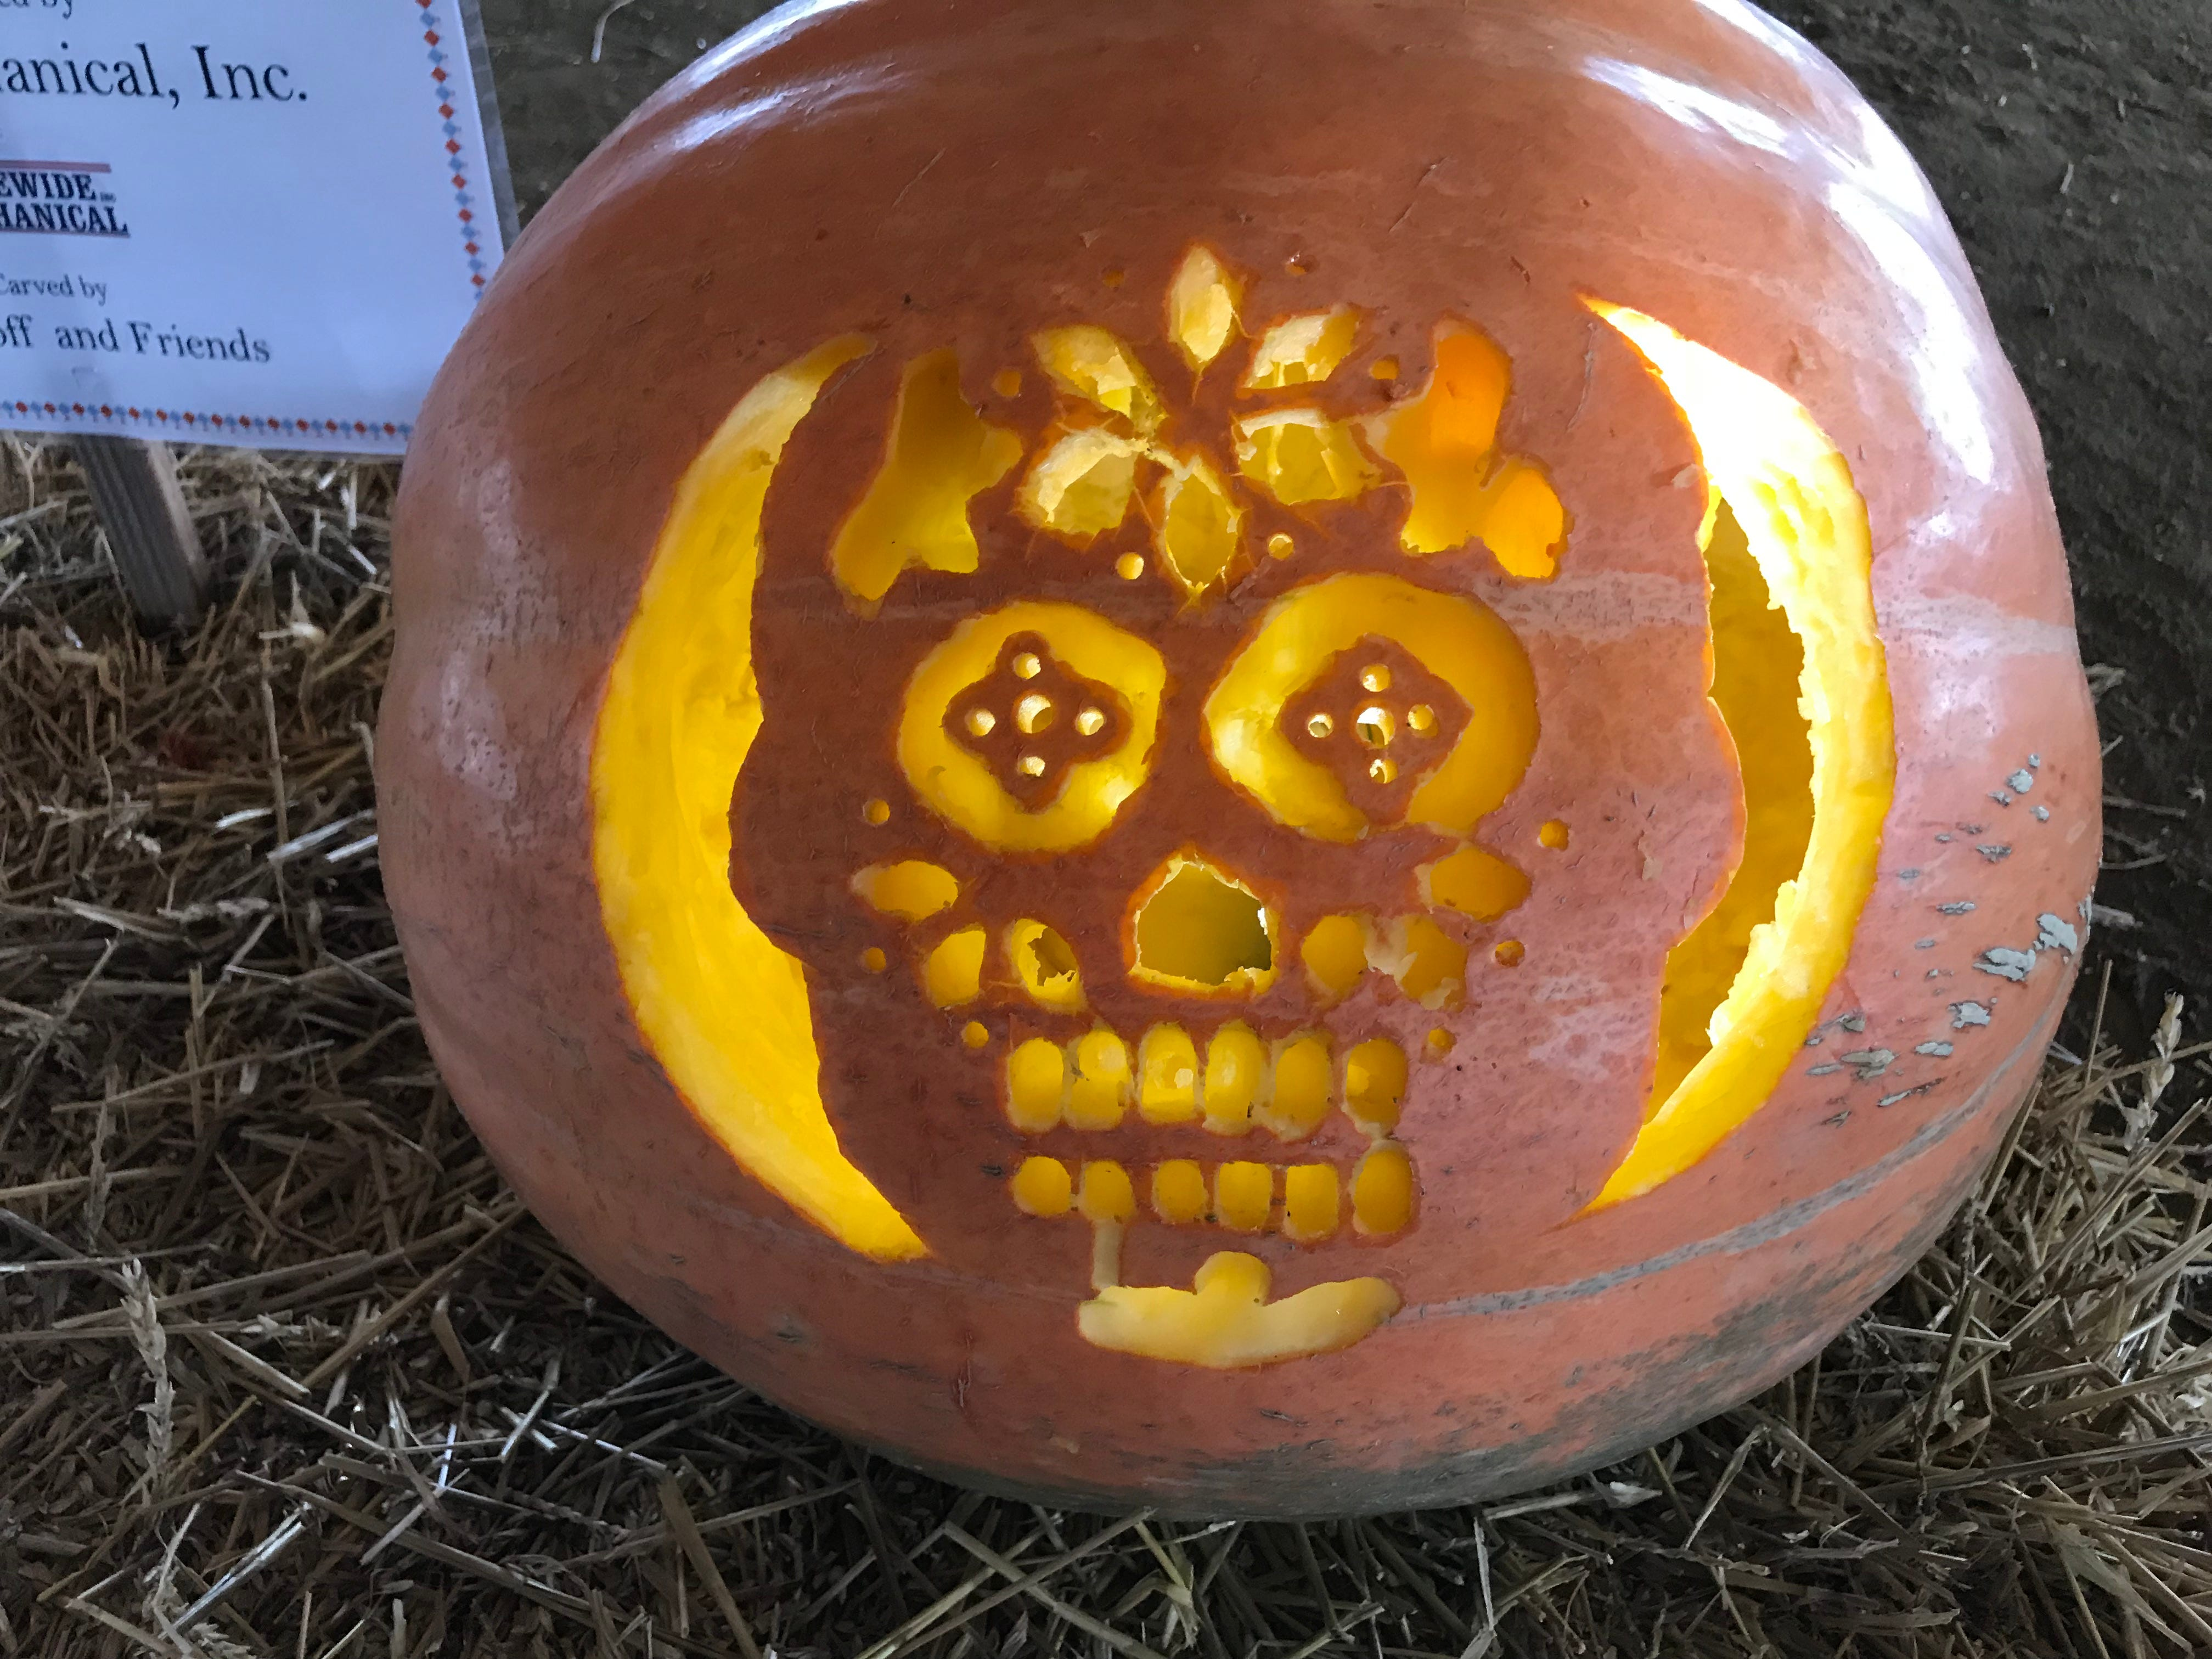 Cindy Westhoff and friends carved this sugar skull at the first Great Delaware Pumpkin Carve in Harrington.